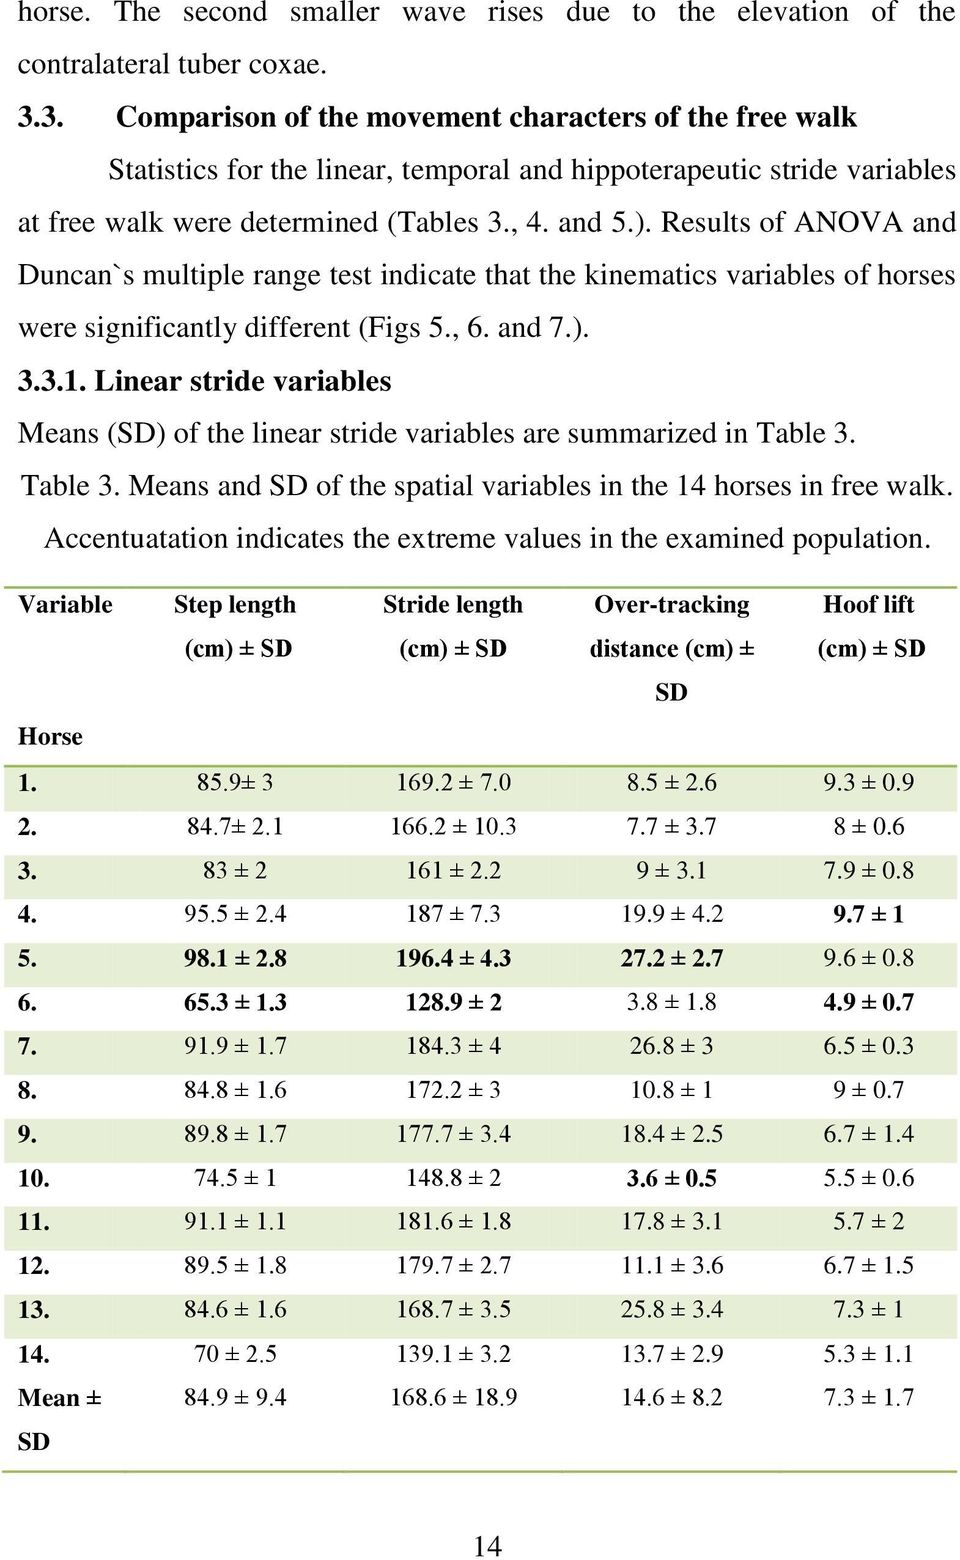 Results of ANOVA and Duncan`s multiple range test indicate that the kinematics variables of horses were significantly different (Figs 5., 6. and 7.). 3.3.1.